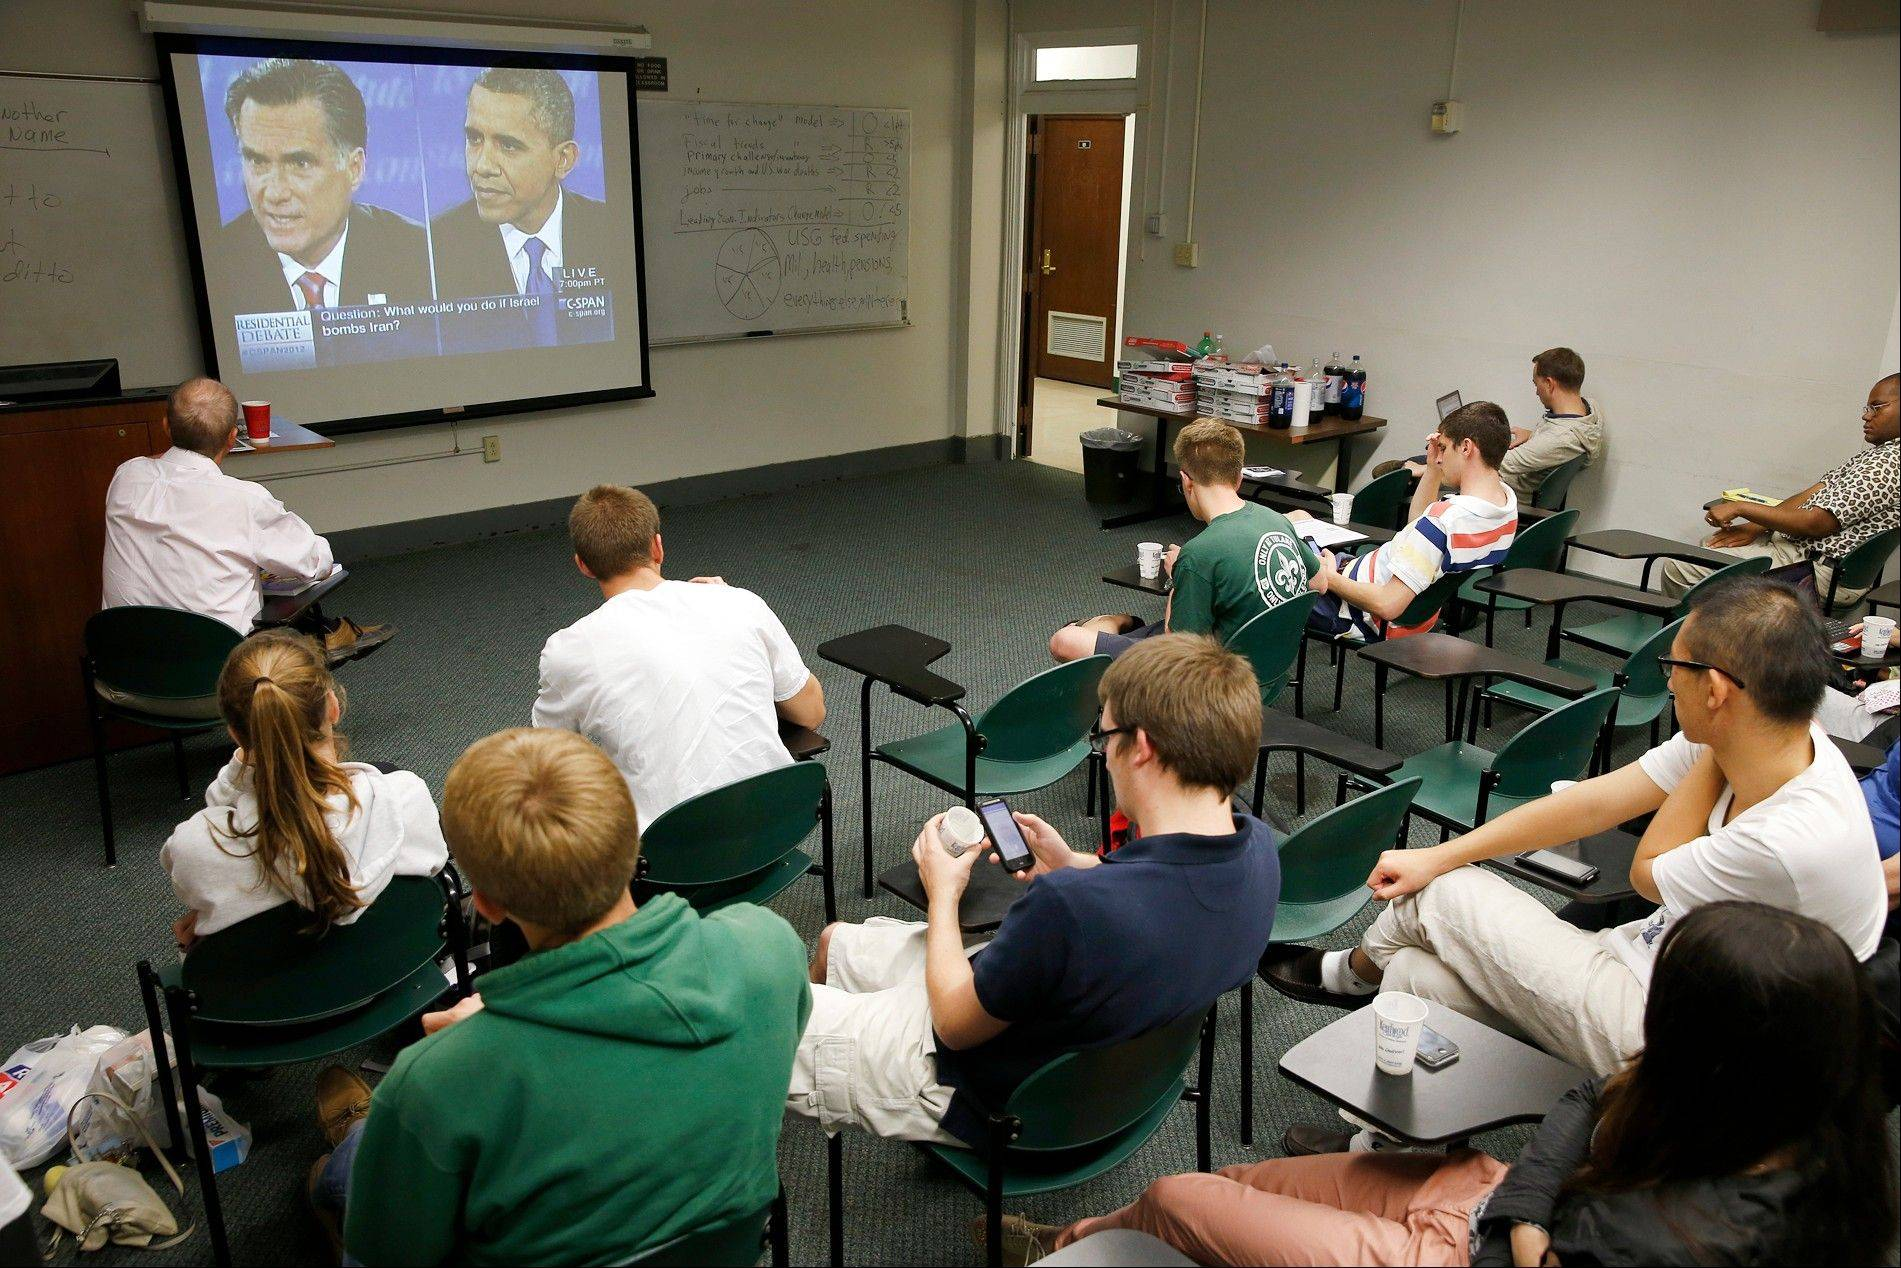 A group of Tulane University students watch the third presidential debate at Tulane University in New Orleans on Monday. Tulane�s political science department sponsored the event.